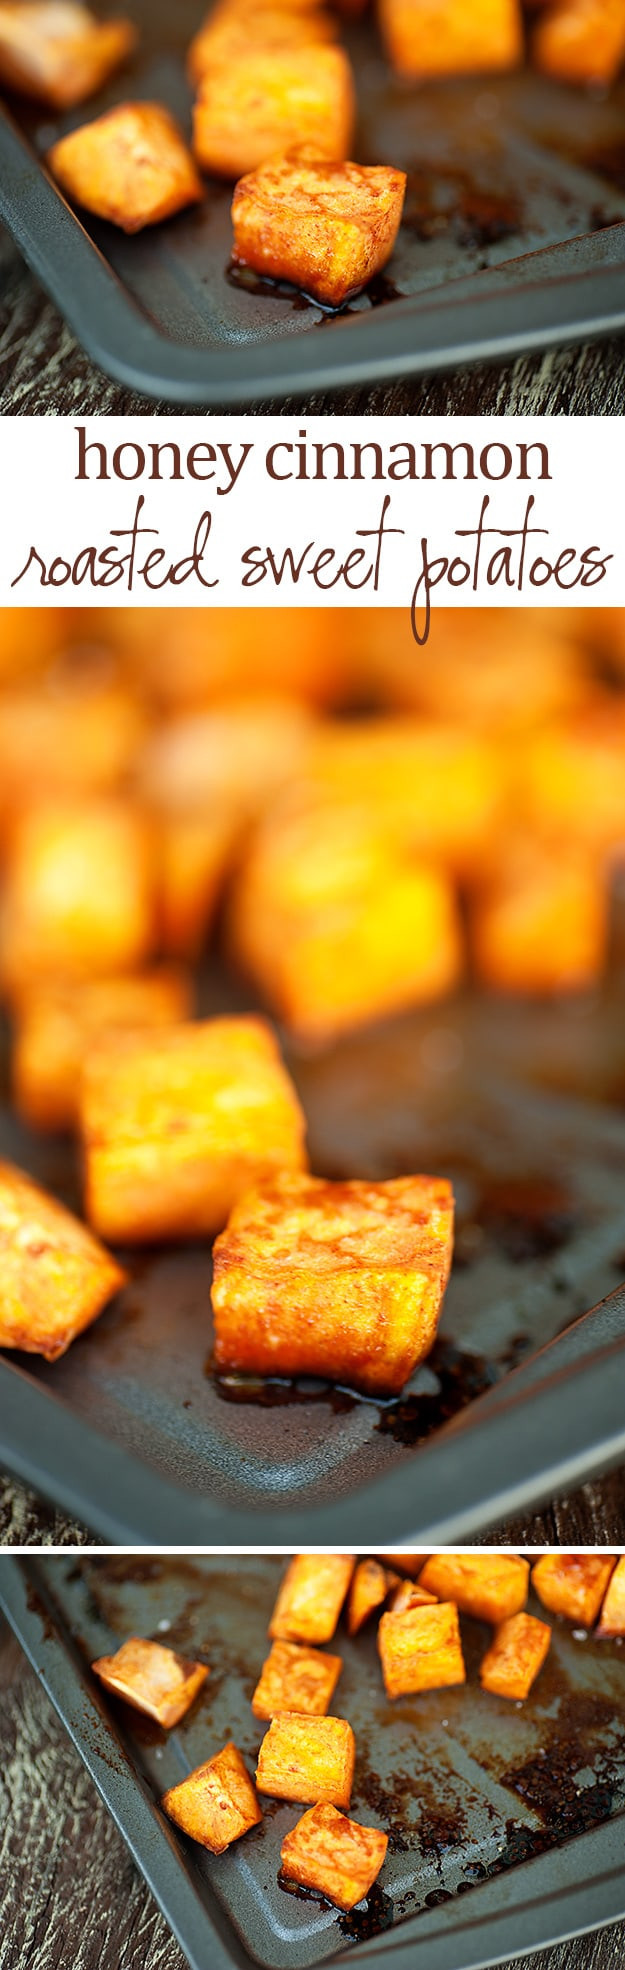 Thanksgiving Roasted Sweet Potatoes  Roasted Sweet Potatoes With Honey and Cinnamon